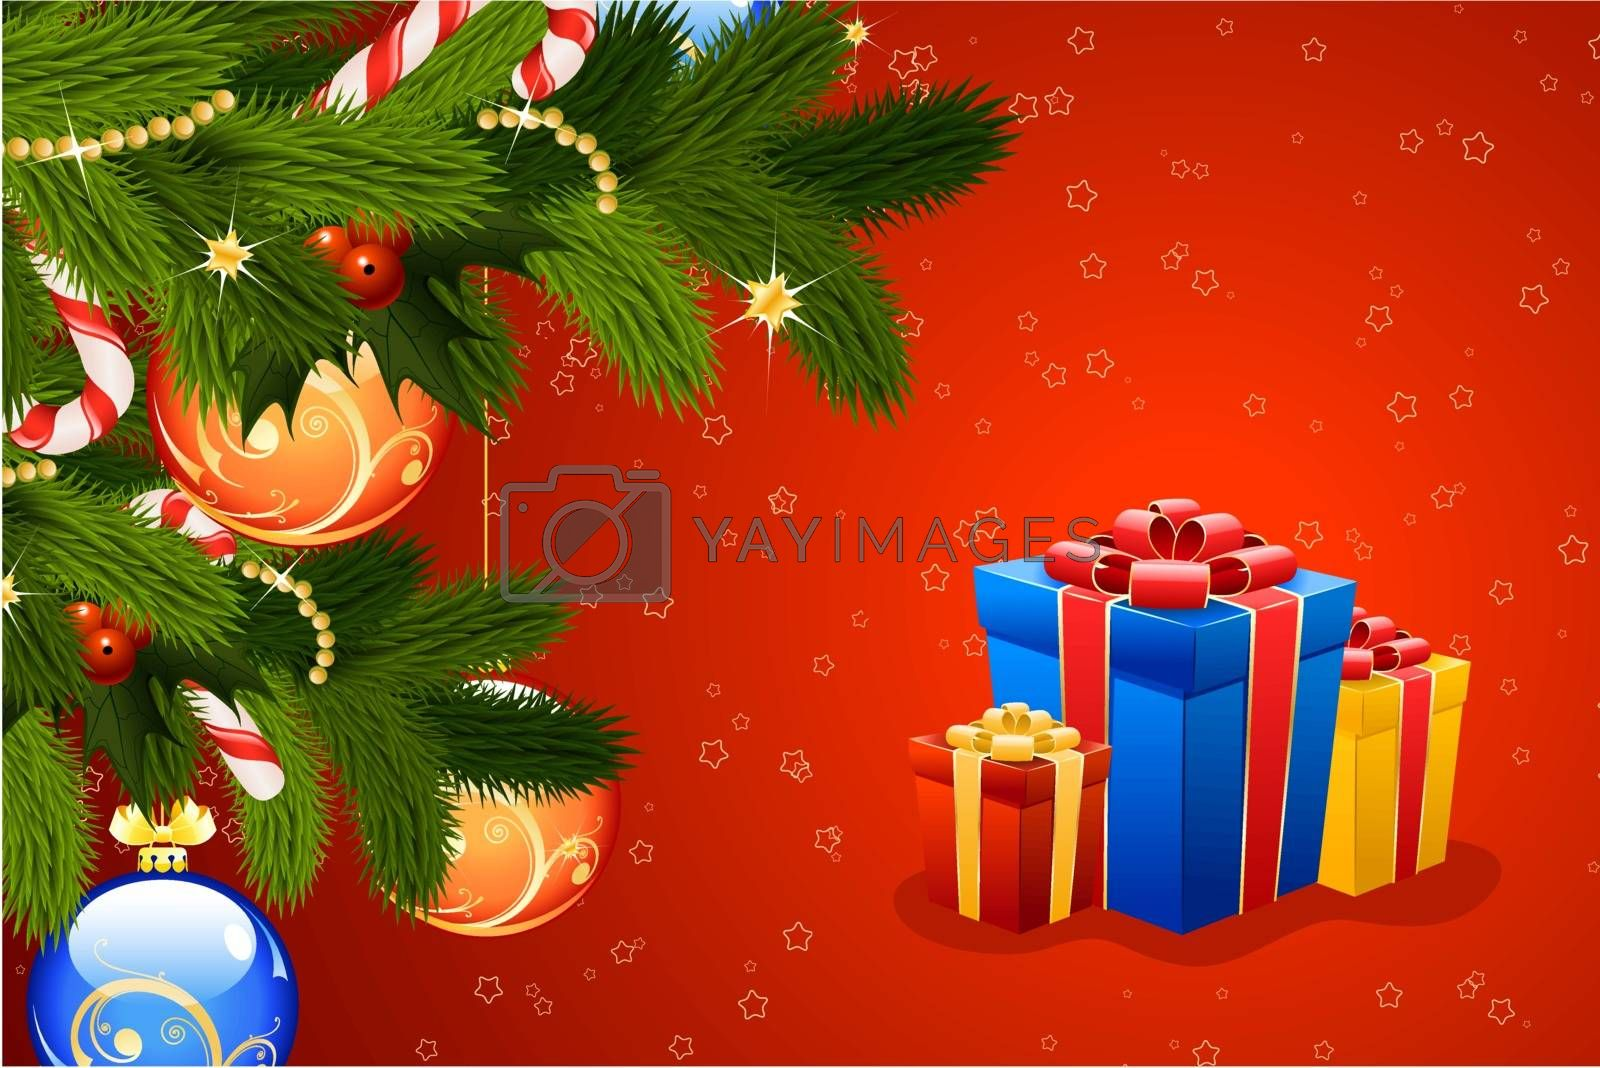 Christmas Card with fir mistletoe decoration and gifts for your design